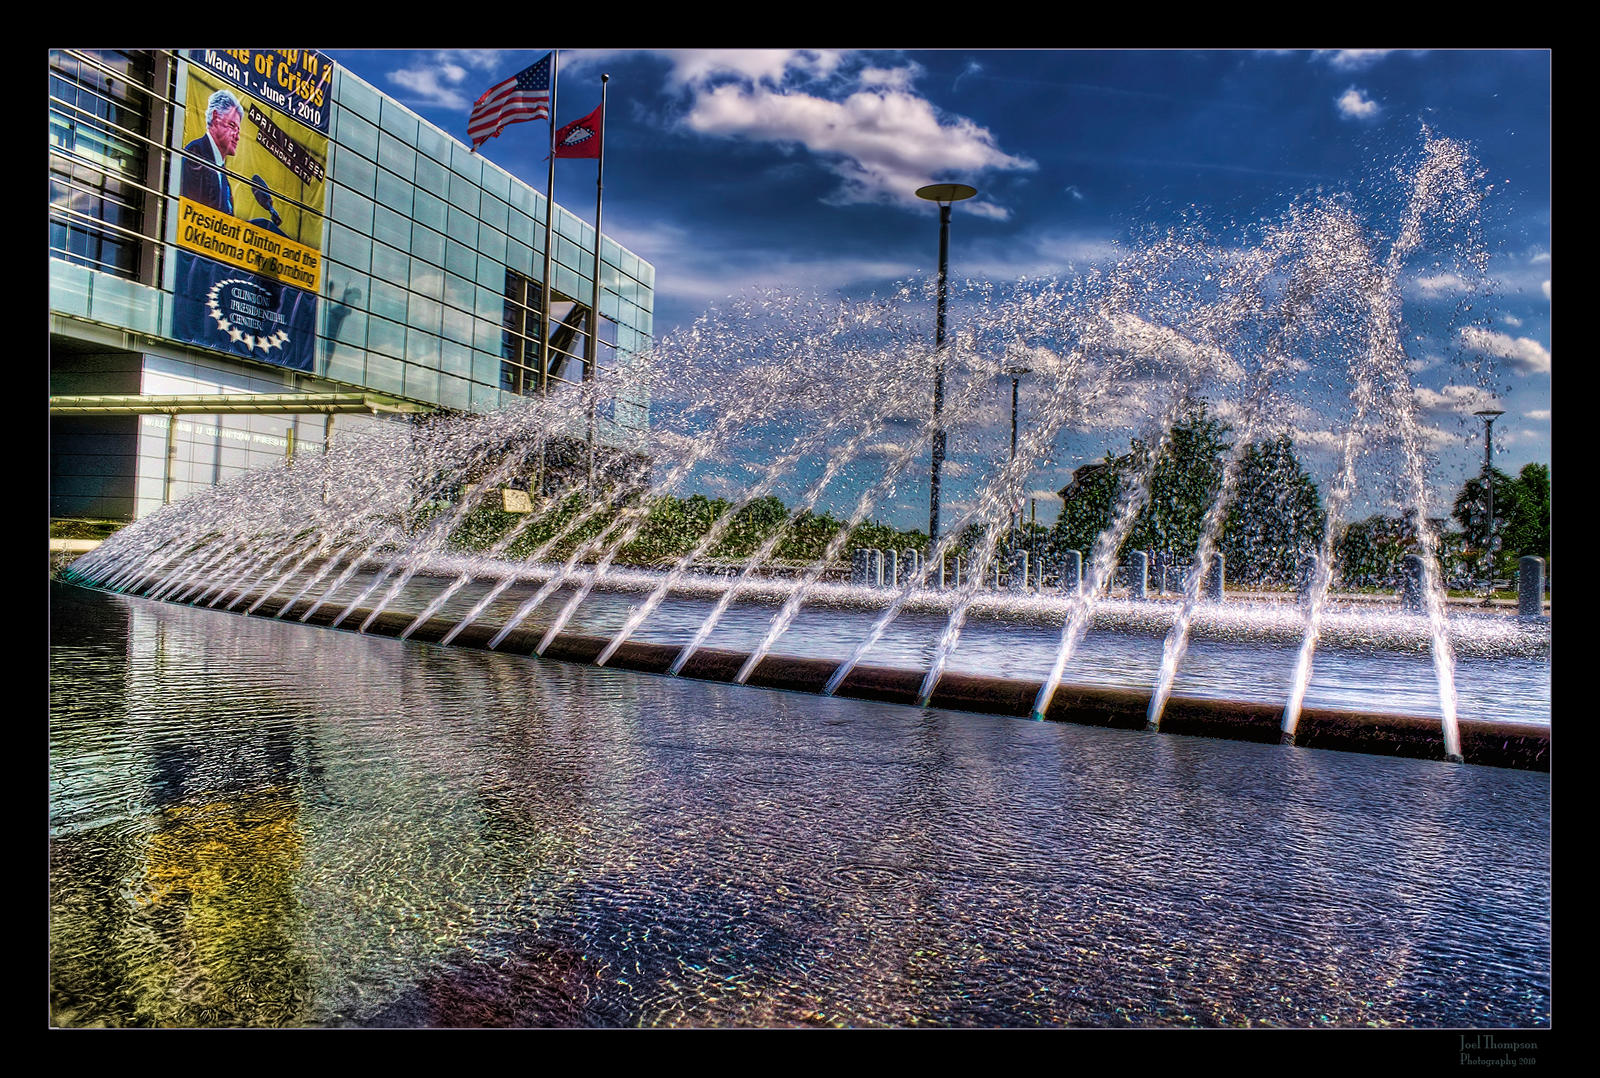 Clinton's Fountain HDR II by joelht74